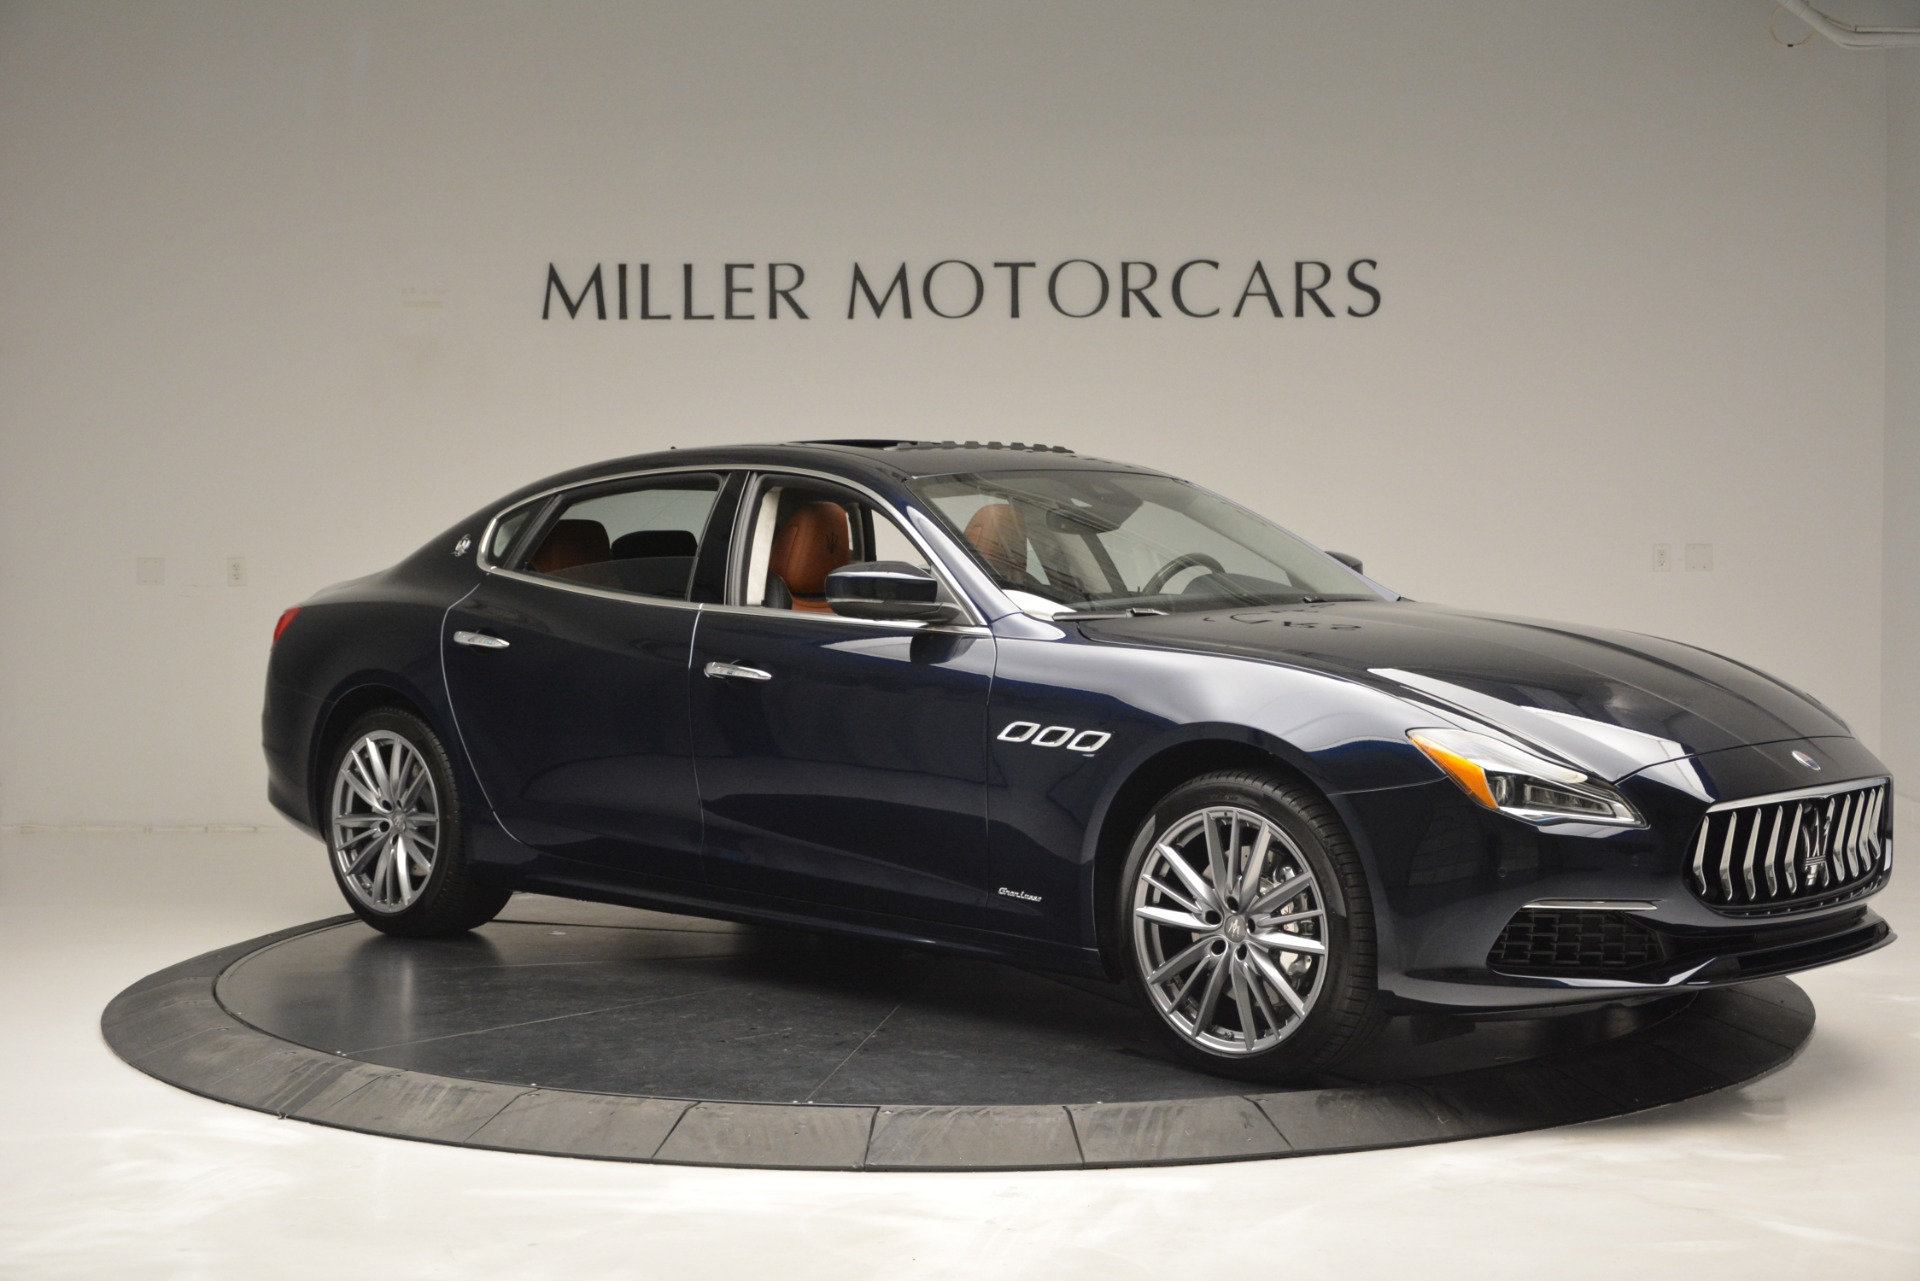 New 2019 Maserati Quattroporte S Q4 GranLusso Edizione Nobile For Sale In Greenwich, CT 2898_p16